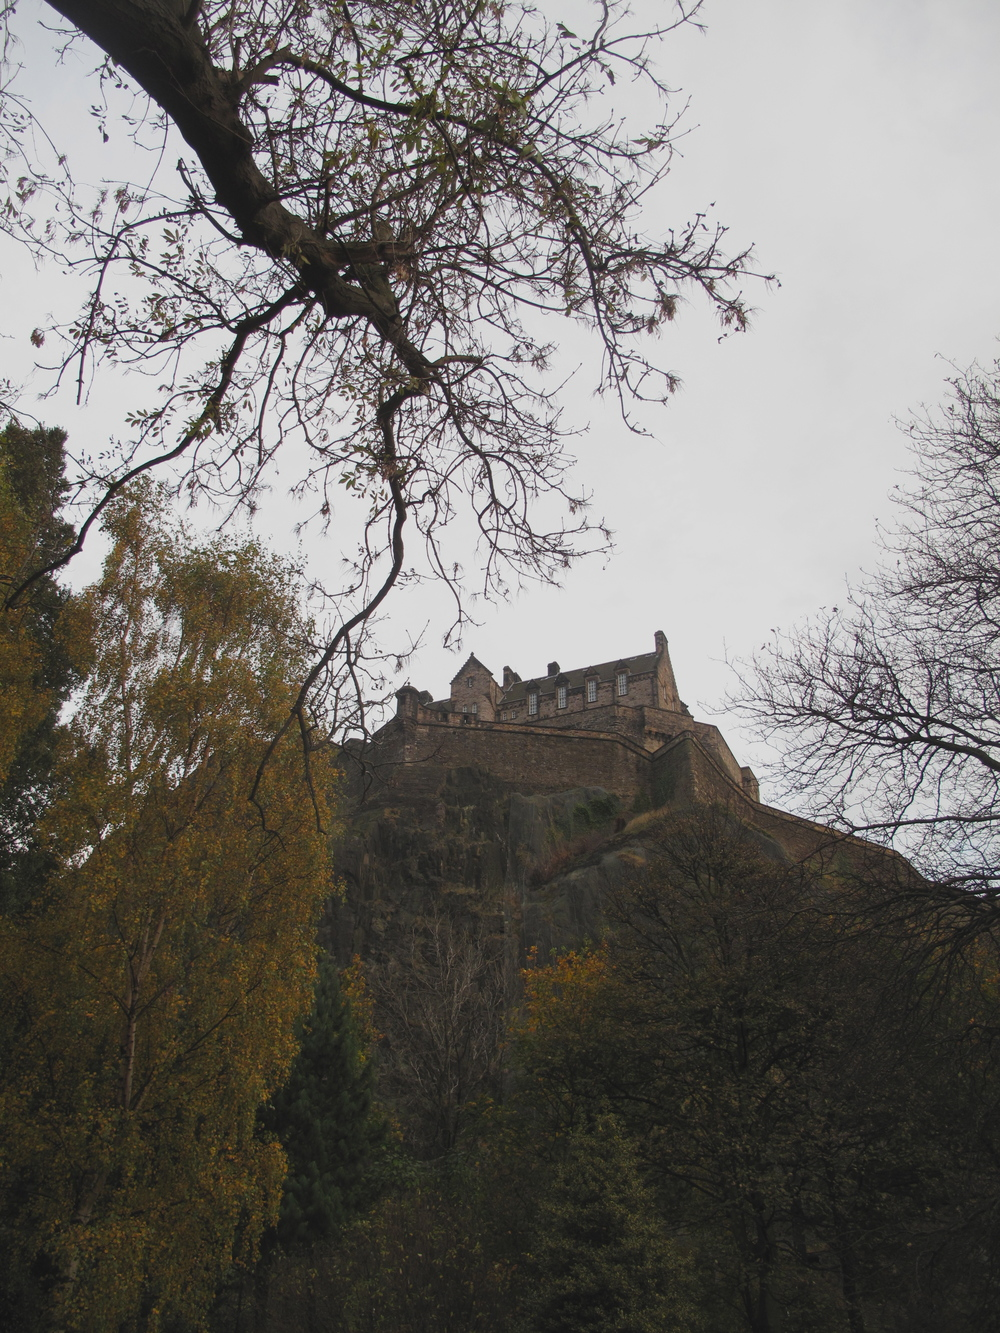 Edinburgh Castle framed by autumn and winter trees - spooky castle on a cliff.